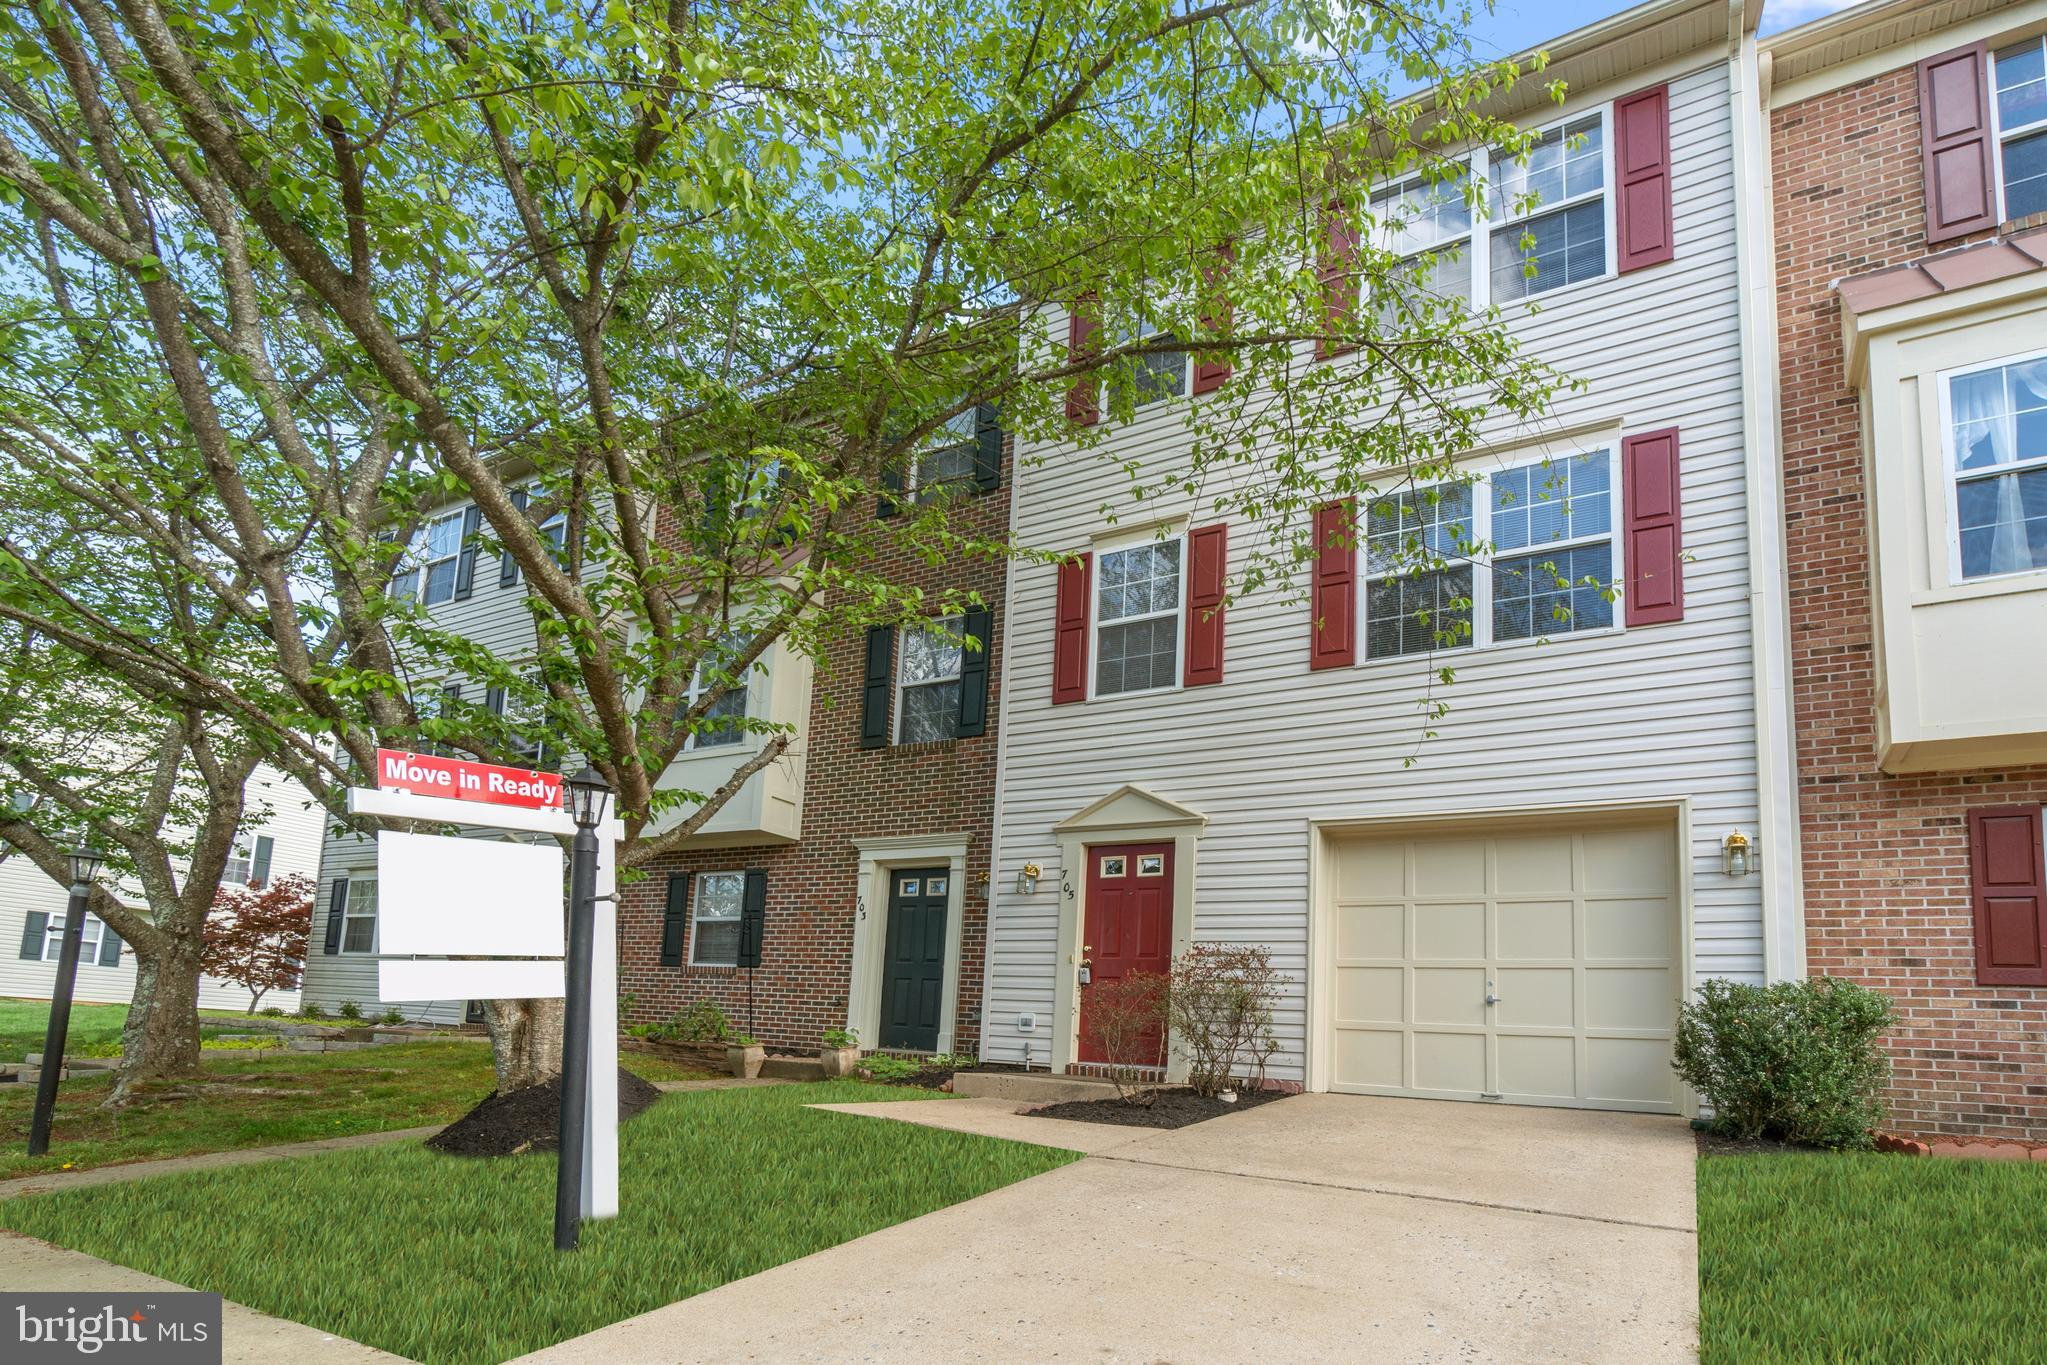 BEAUTIFUL 3 STORY TOWNHOME LOCATED MINUTES AWAY FROM DOWNTOWN FREDERICKSBURG AND I95. HOME COMES COM